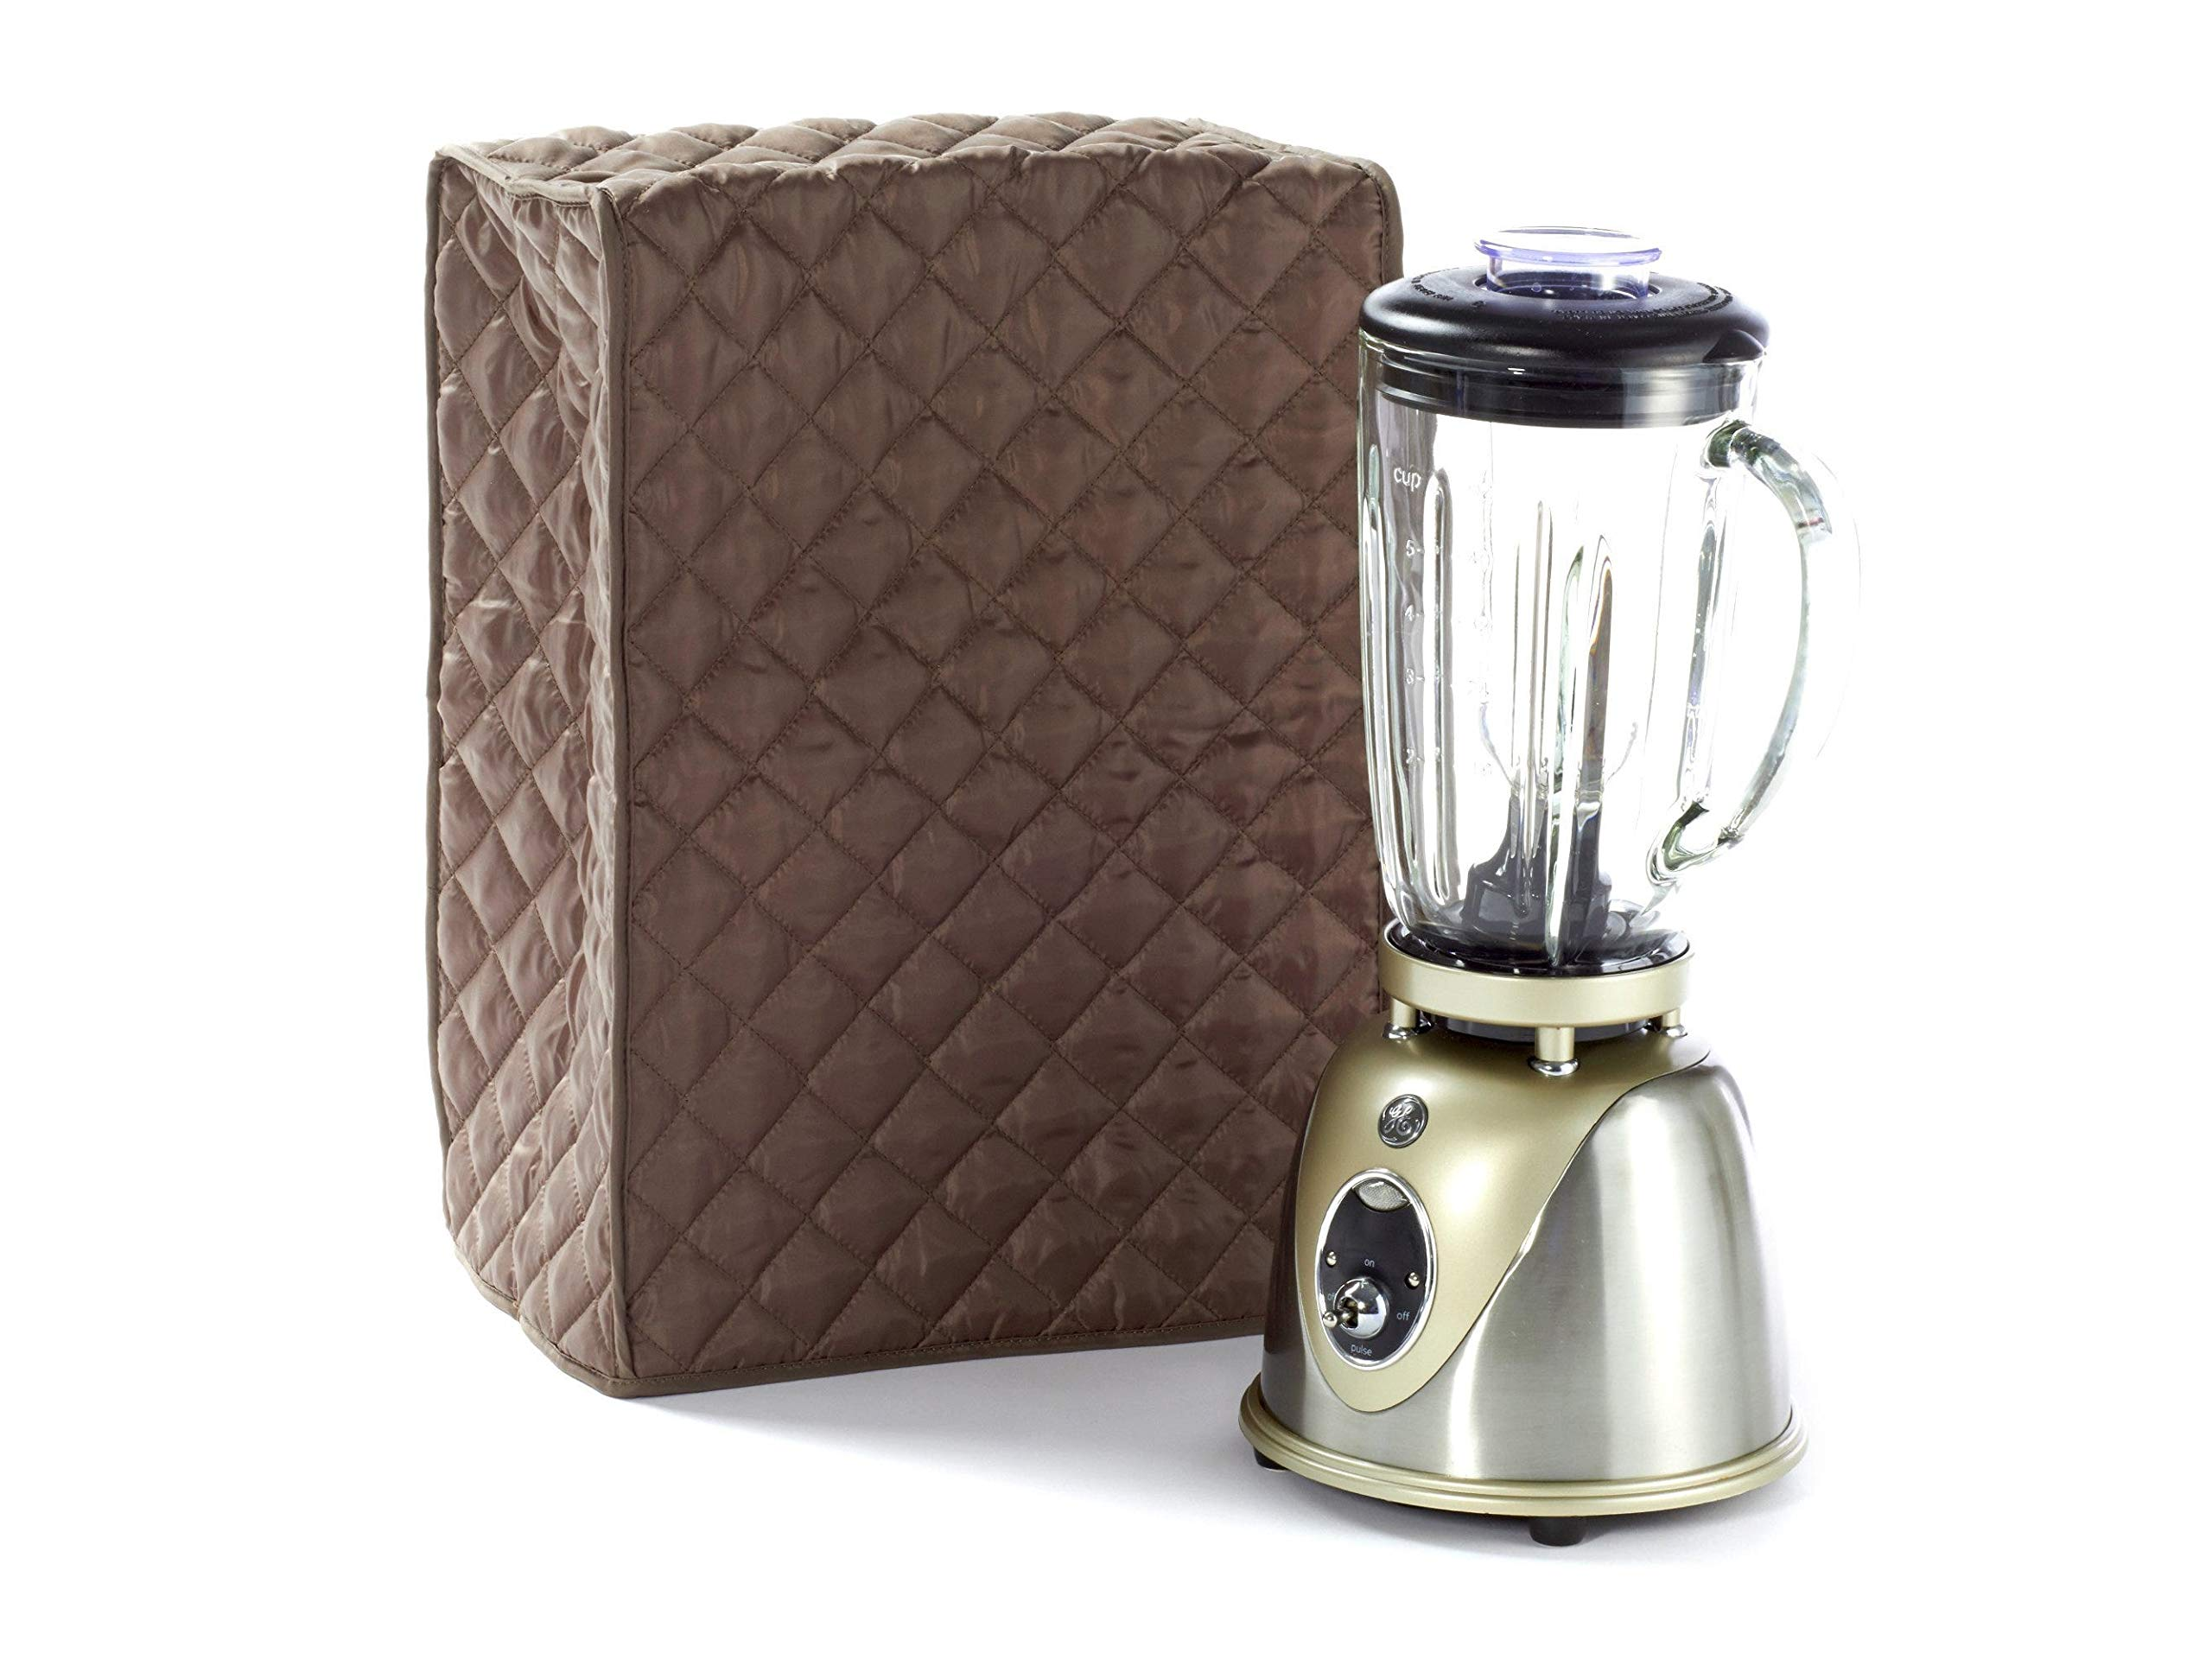 Covermates Keepsakes - Blender Cover – Dust Protection - Stain Resistant - Washable – Appliance Cover - Bronze